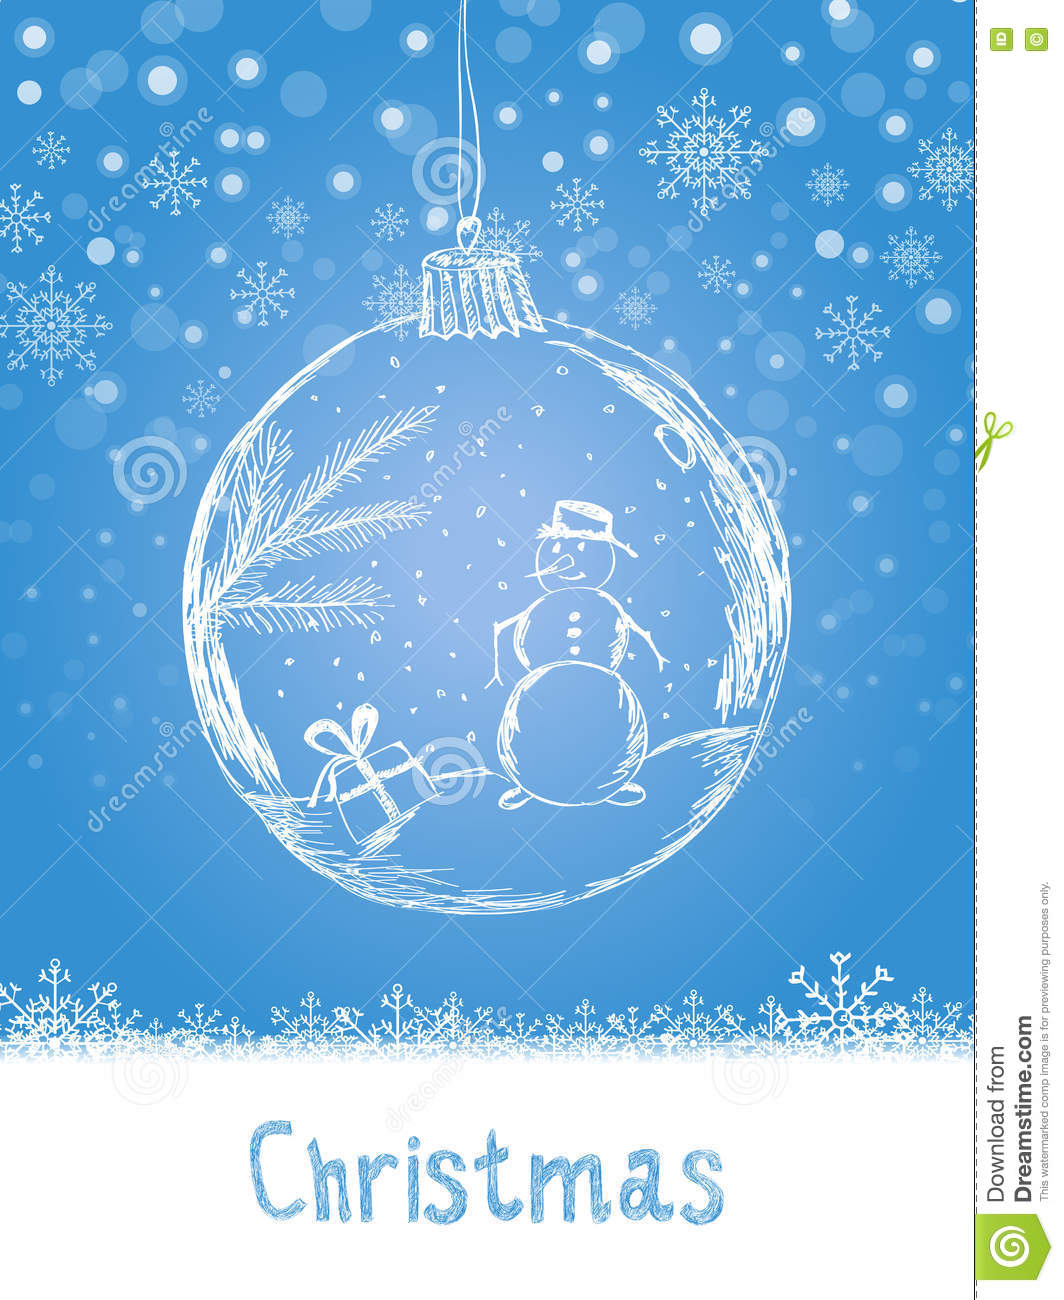 Handwriting Xmas Card With Ball And Snowman For Merry